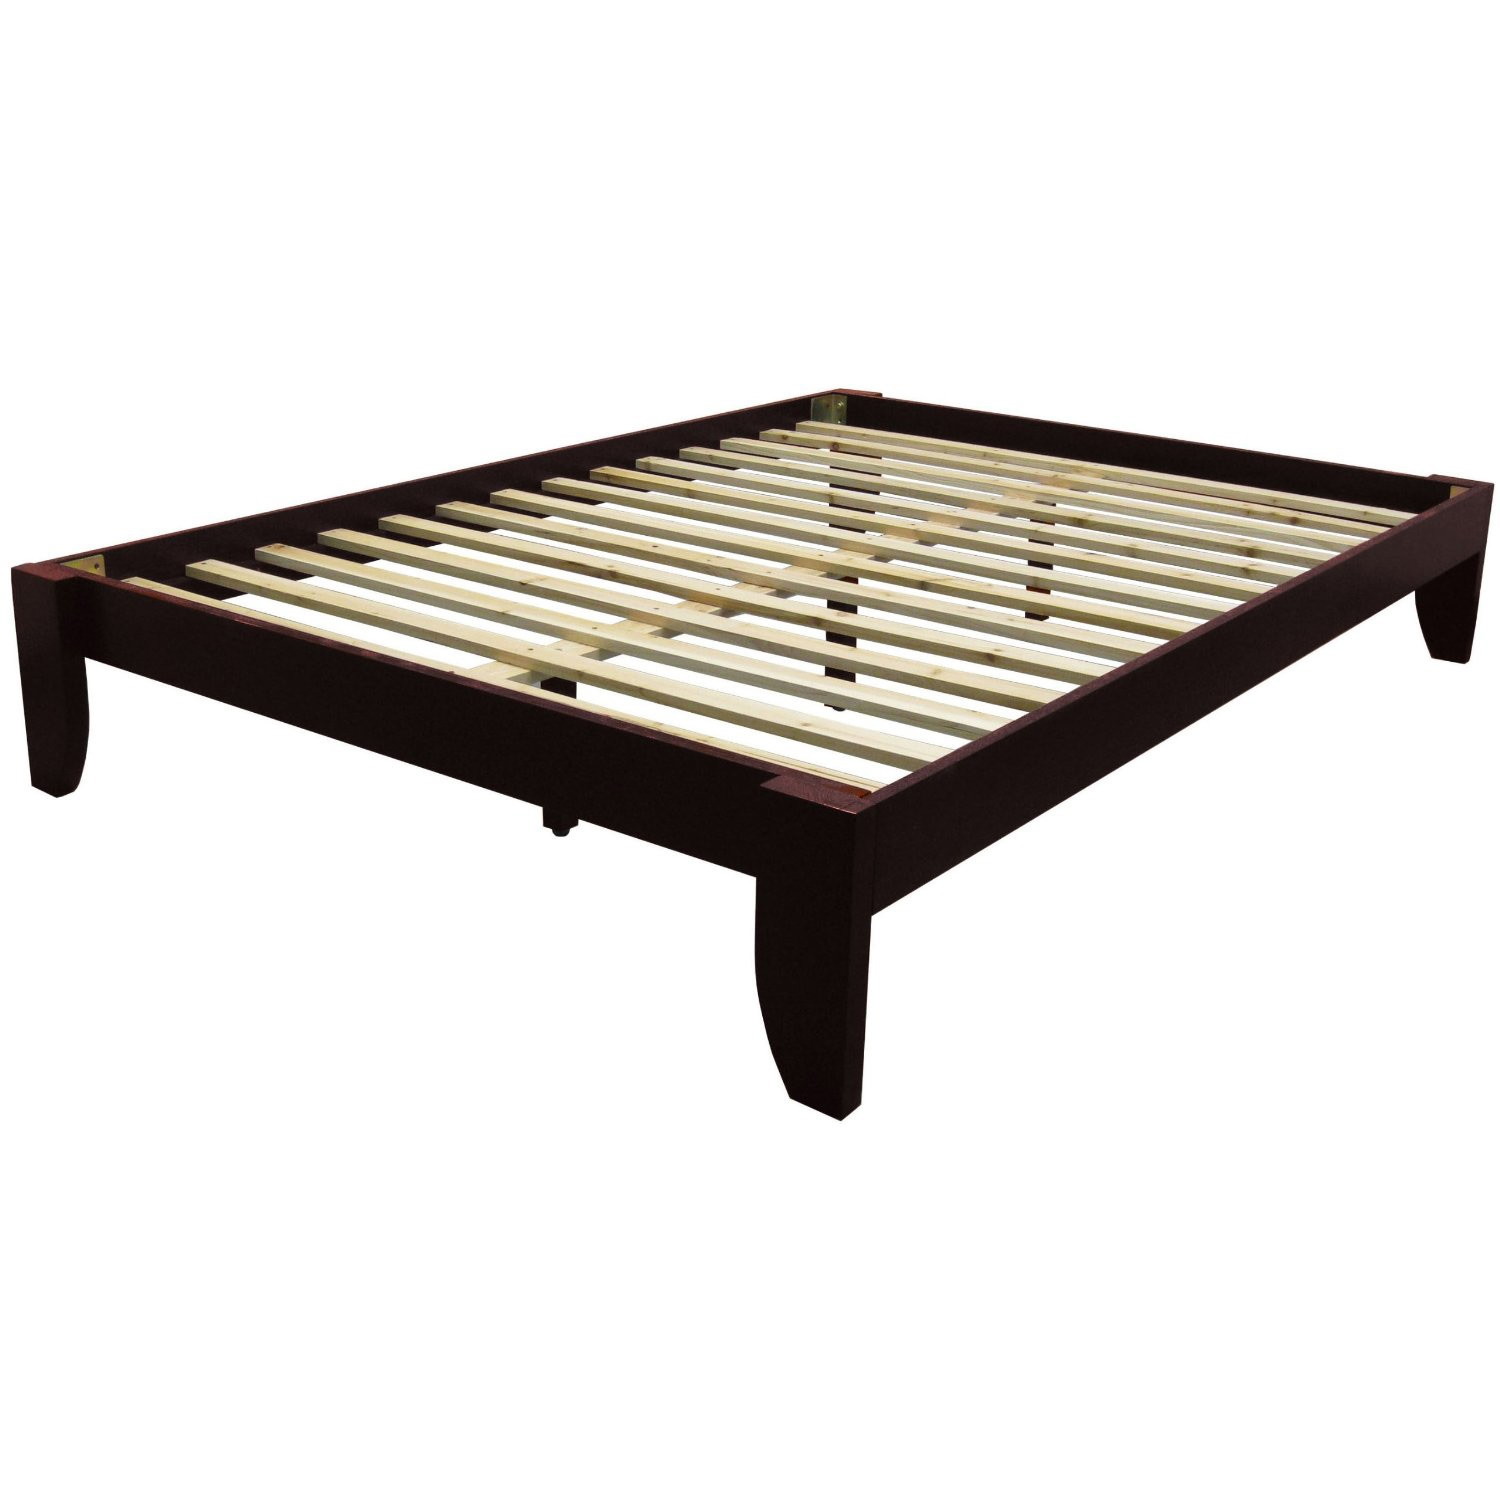 Beautiful Queen size Platform Bed Frame in Mahogany Wood Finish 1 queen size platform bed frame